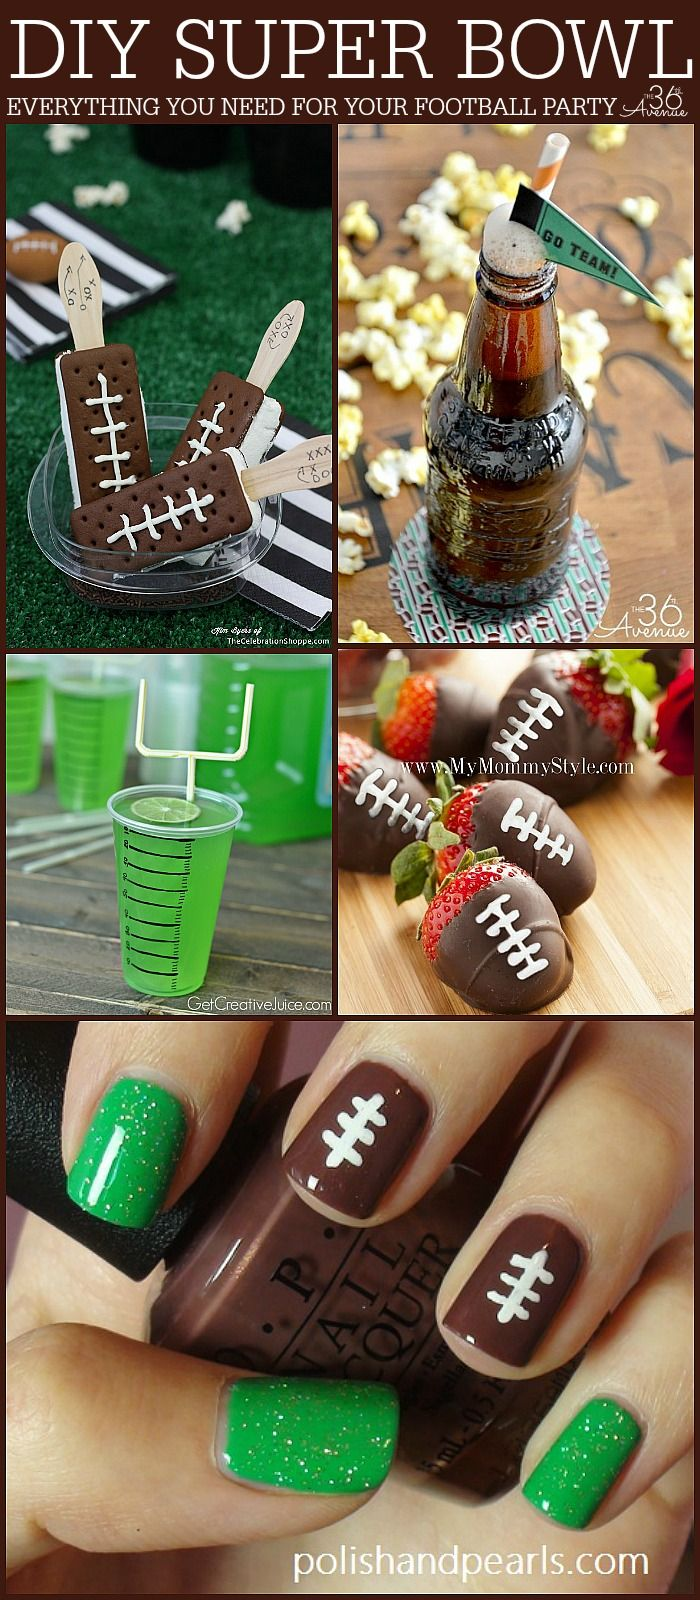 super bowl party ideas | pinterest best | pinterest | super bowl